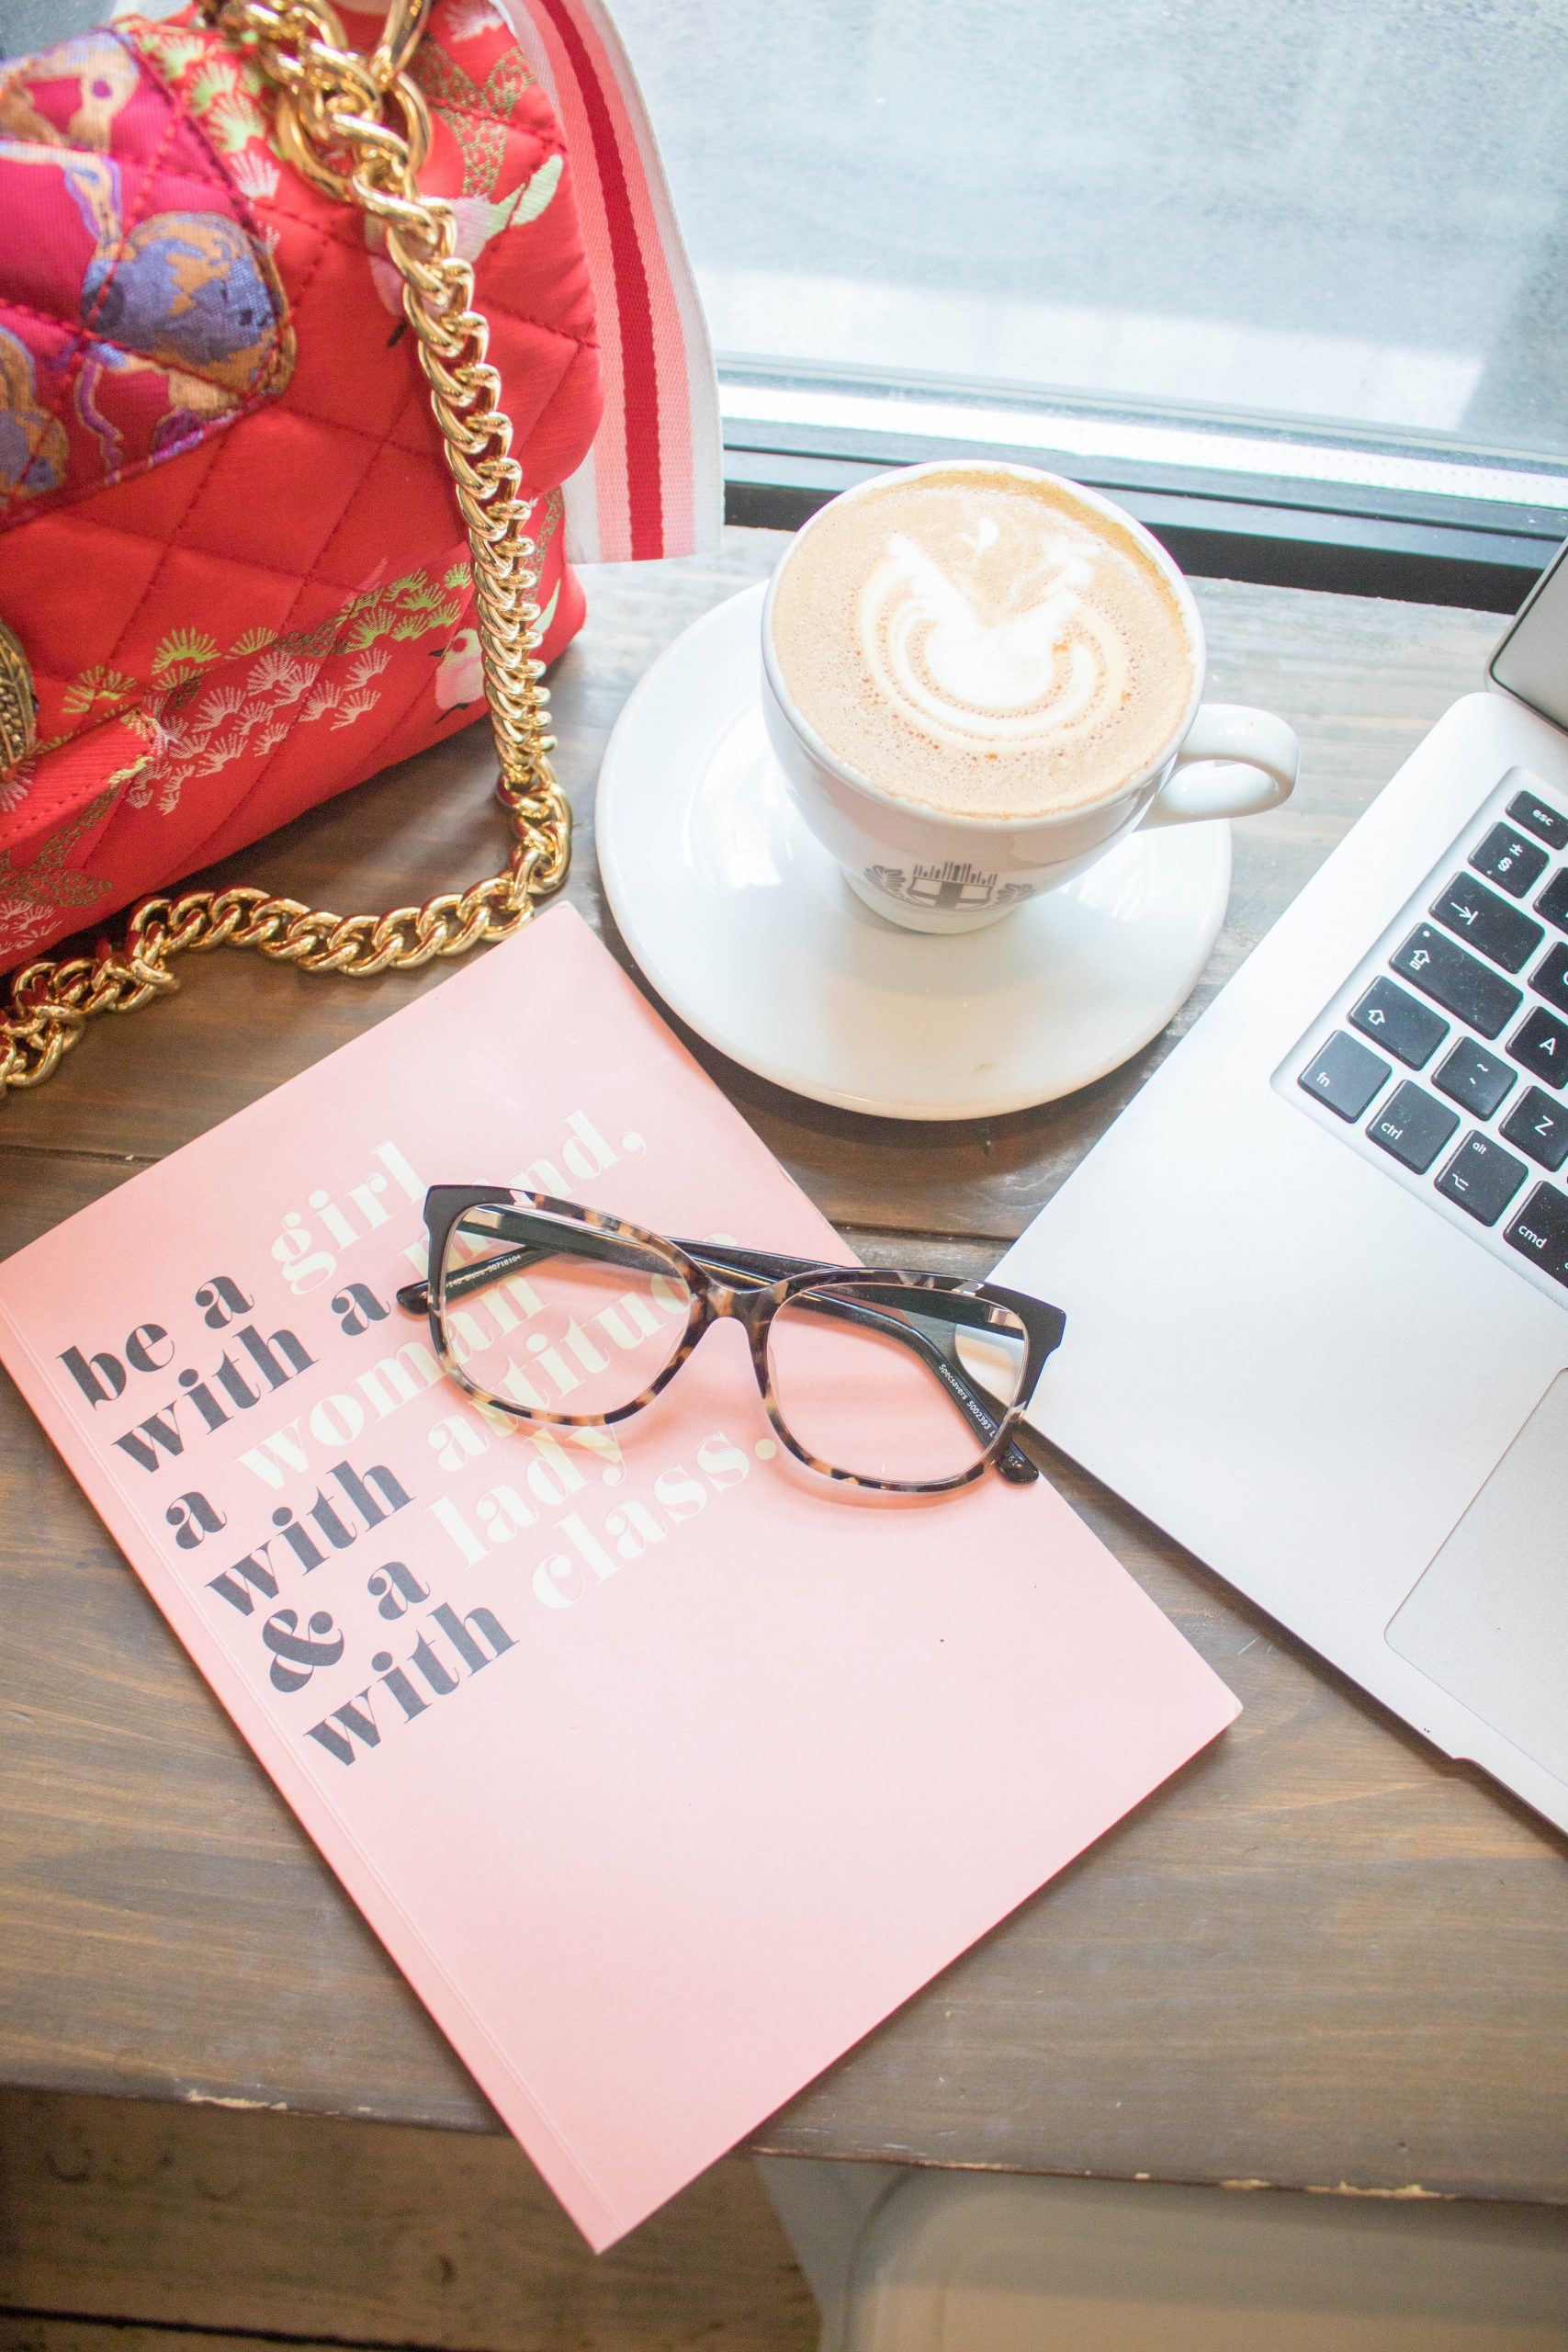 an edited lifestyle blogging while working full time